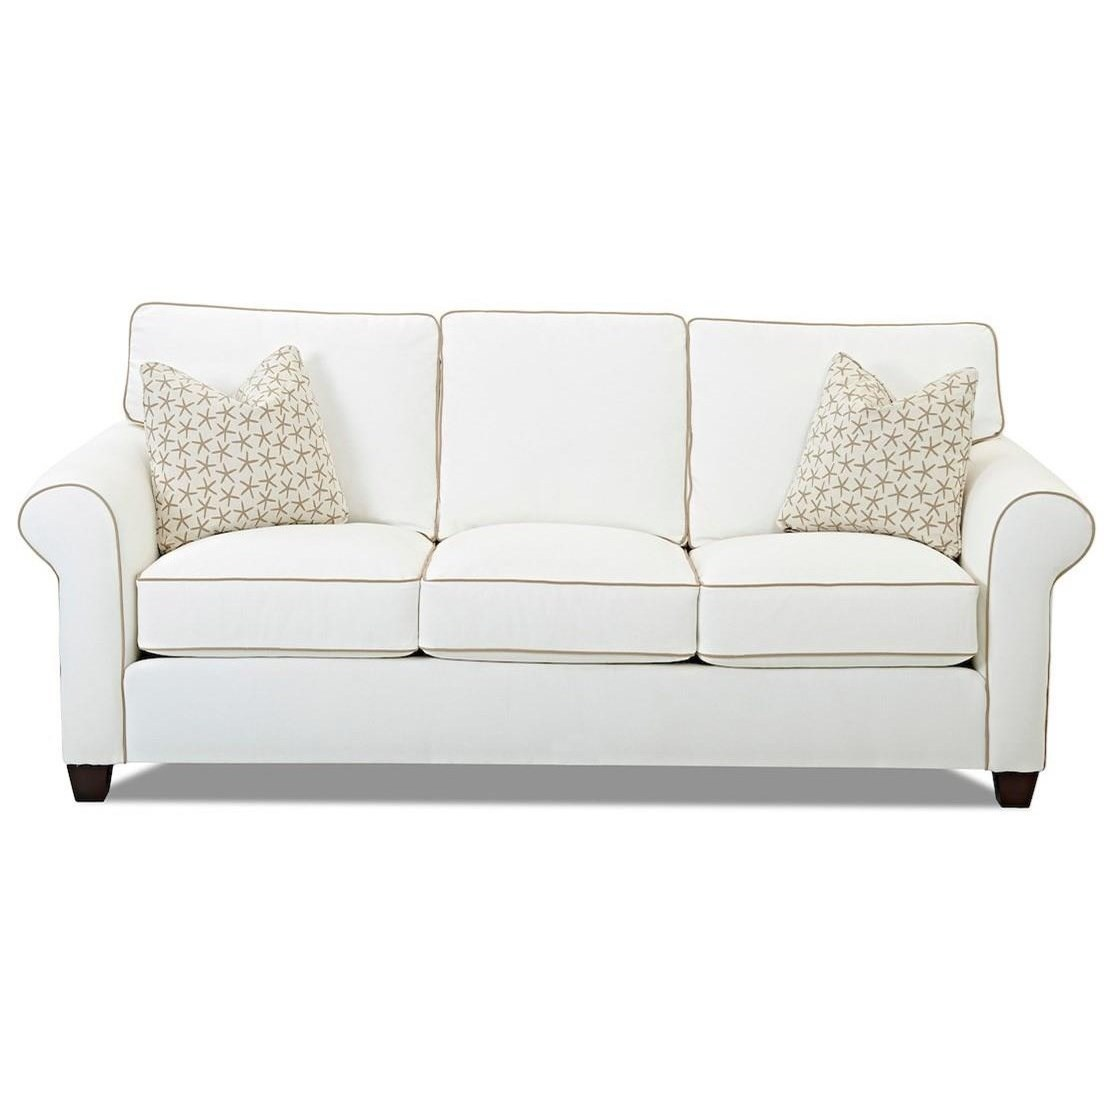 Lillington Extra Large Queen Dreamquest Sleeper Sofa by Klaussner at Johnny Janosik